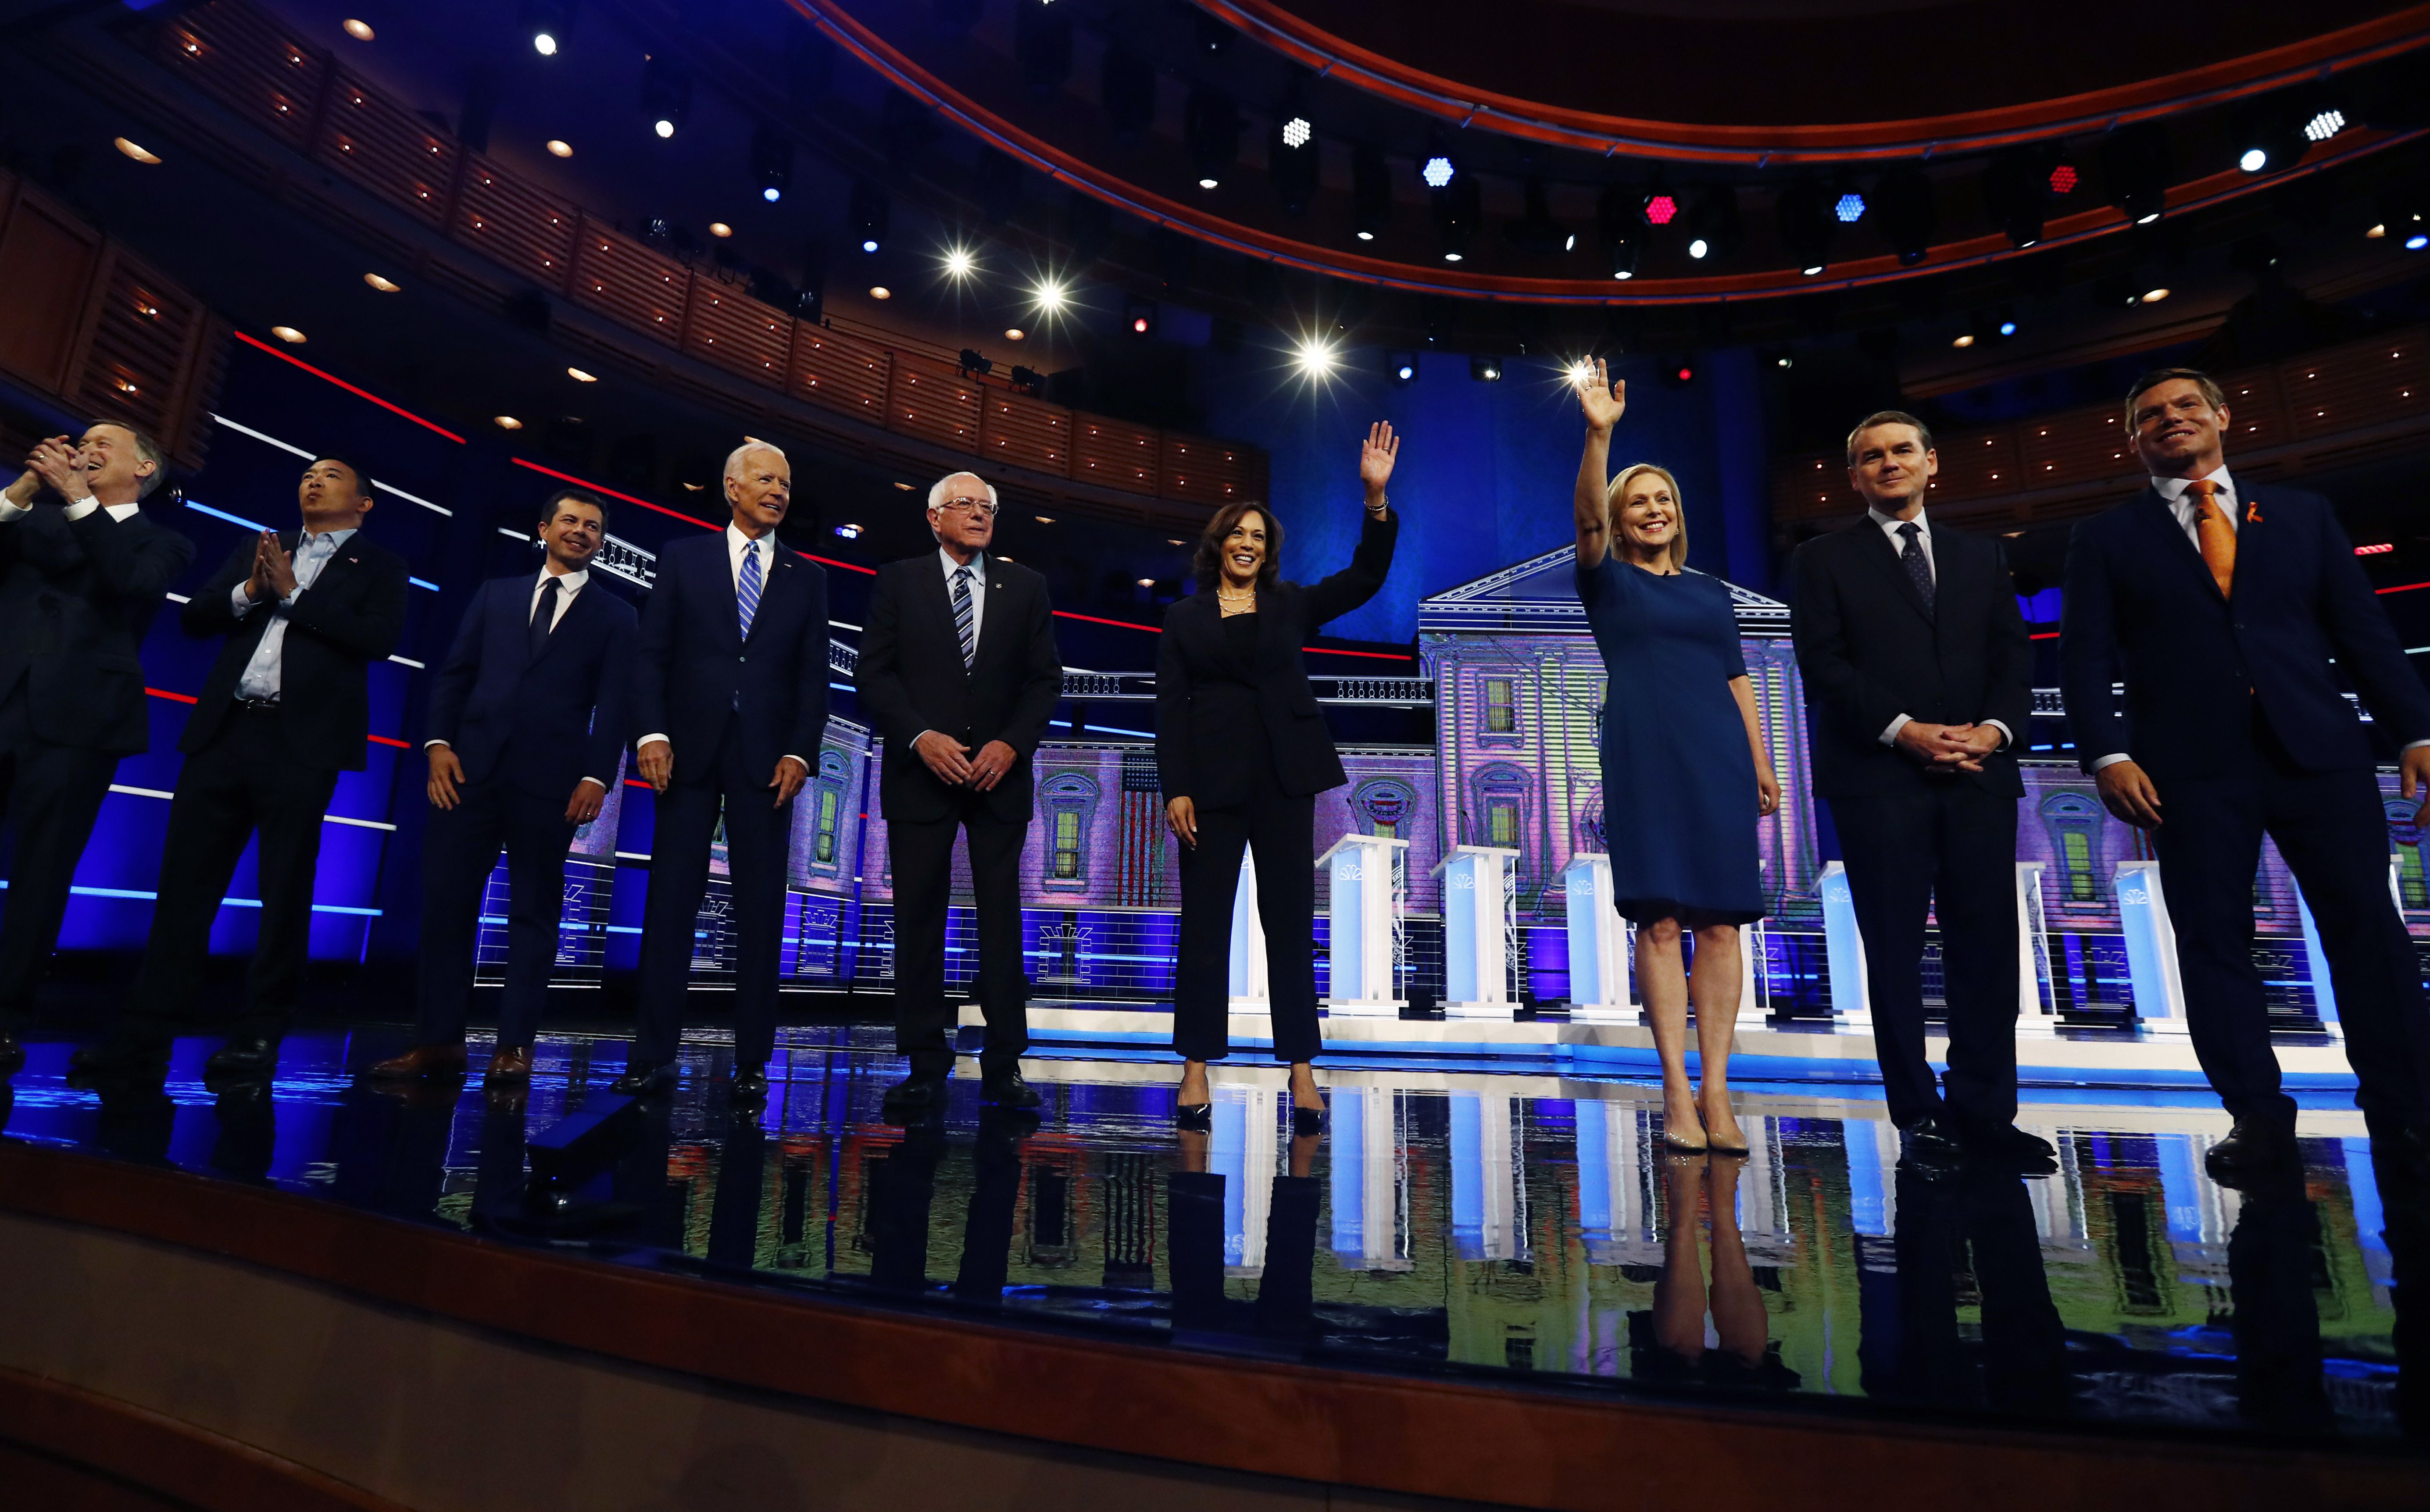 The second round of Democratic debates: How to watch, and who is